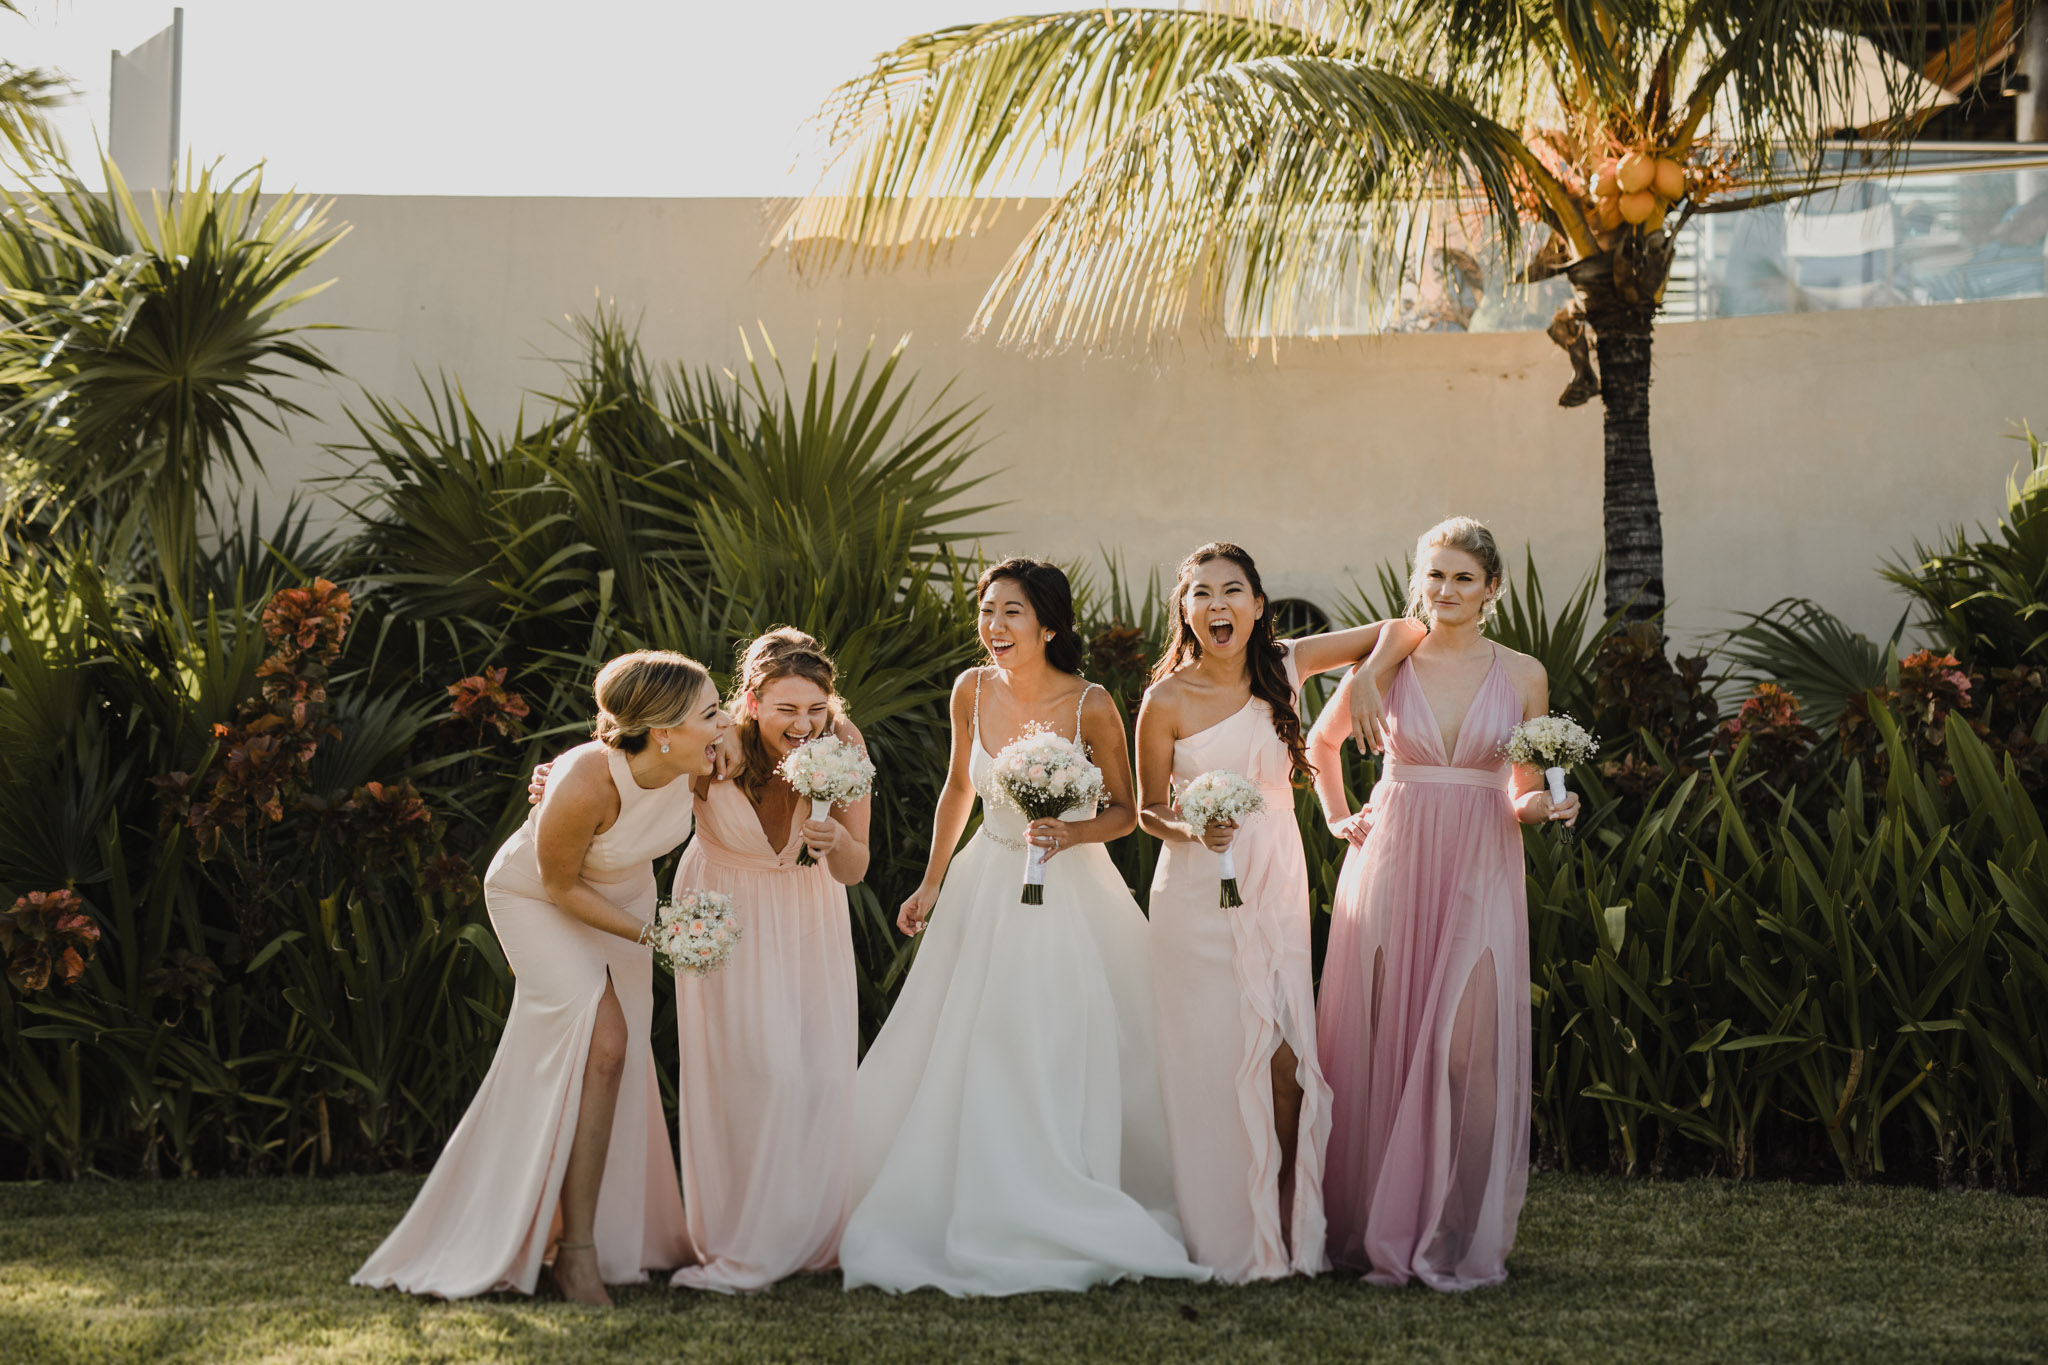 Cancun Mexico Wedding - bridal party laughing